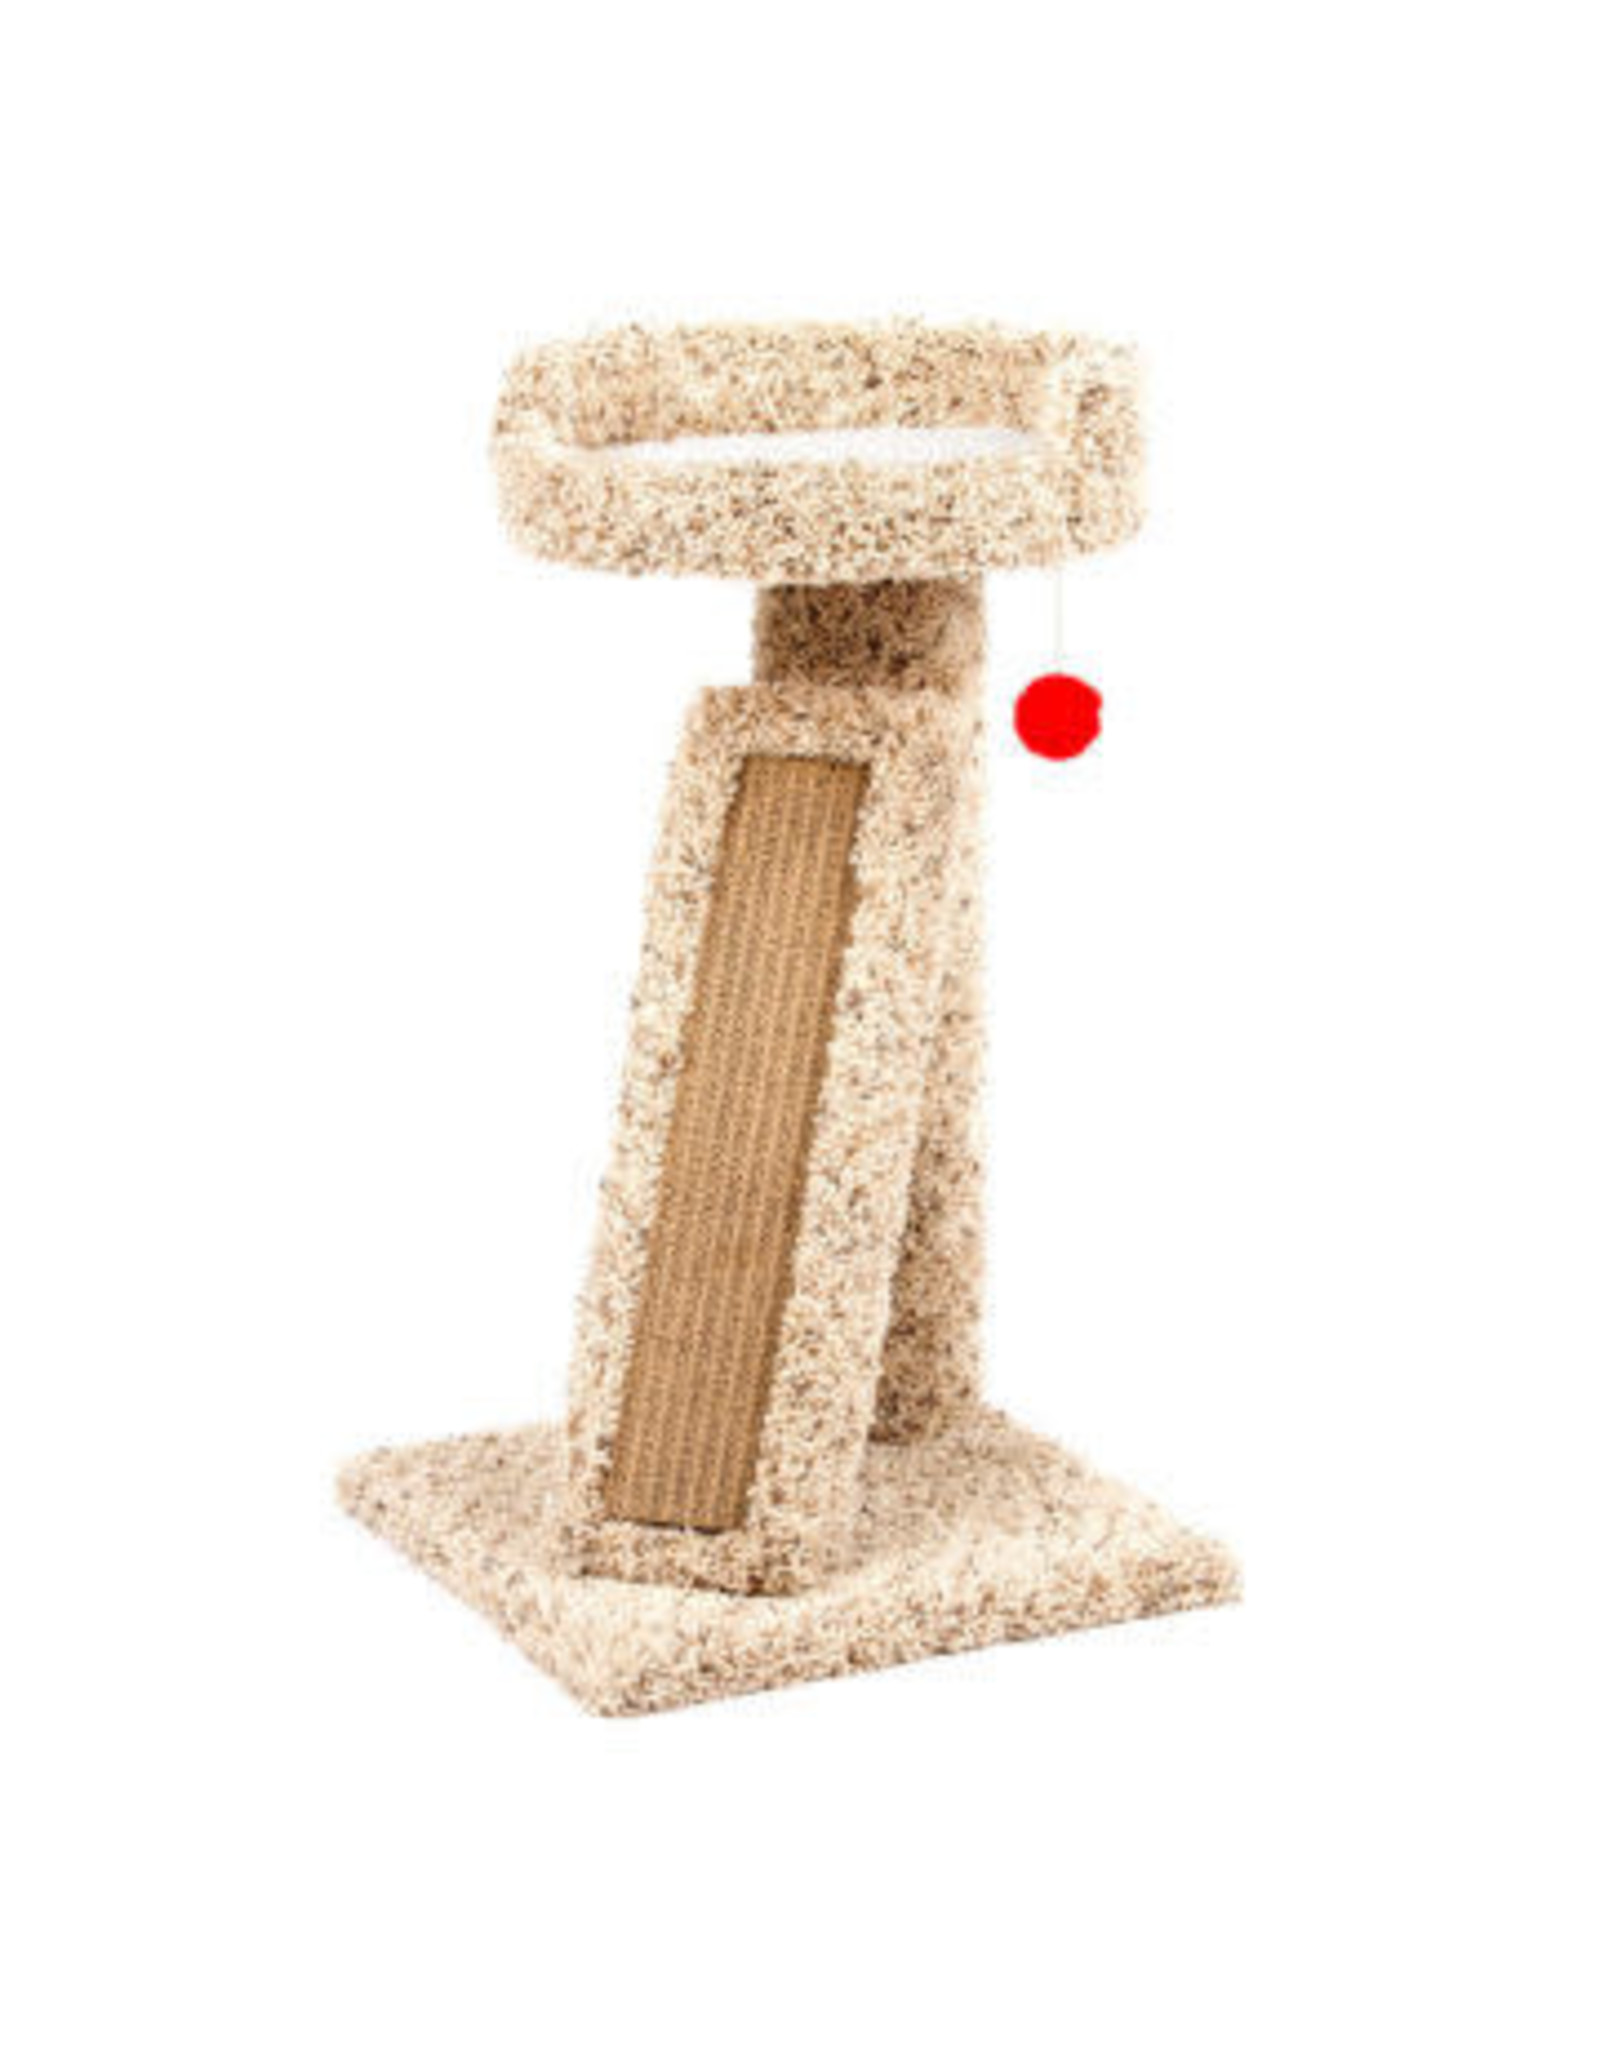 North American Pet Products UrbanCat Nap and Scratch